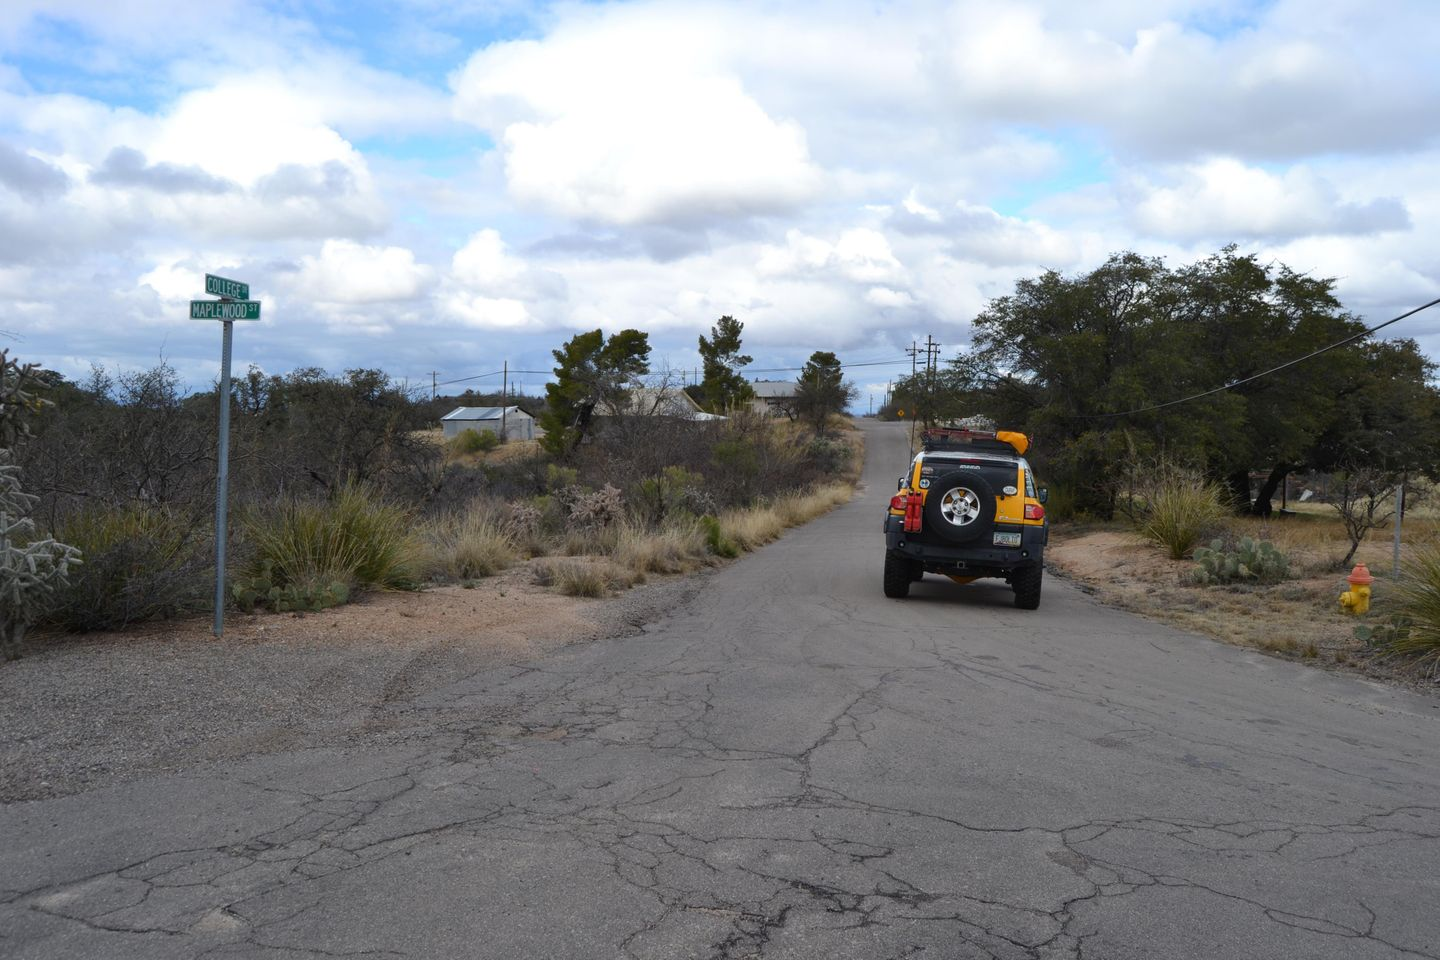 Charouleau Gap / FR# 736 - Waypoint 44: N College Dr  and W Maplewood Street